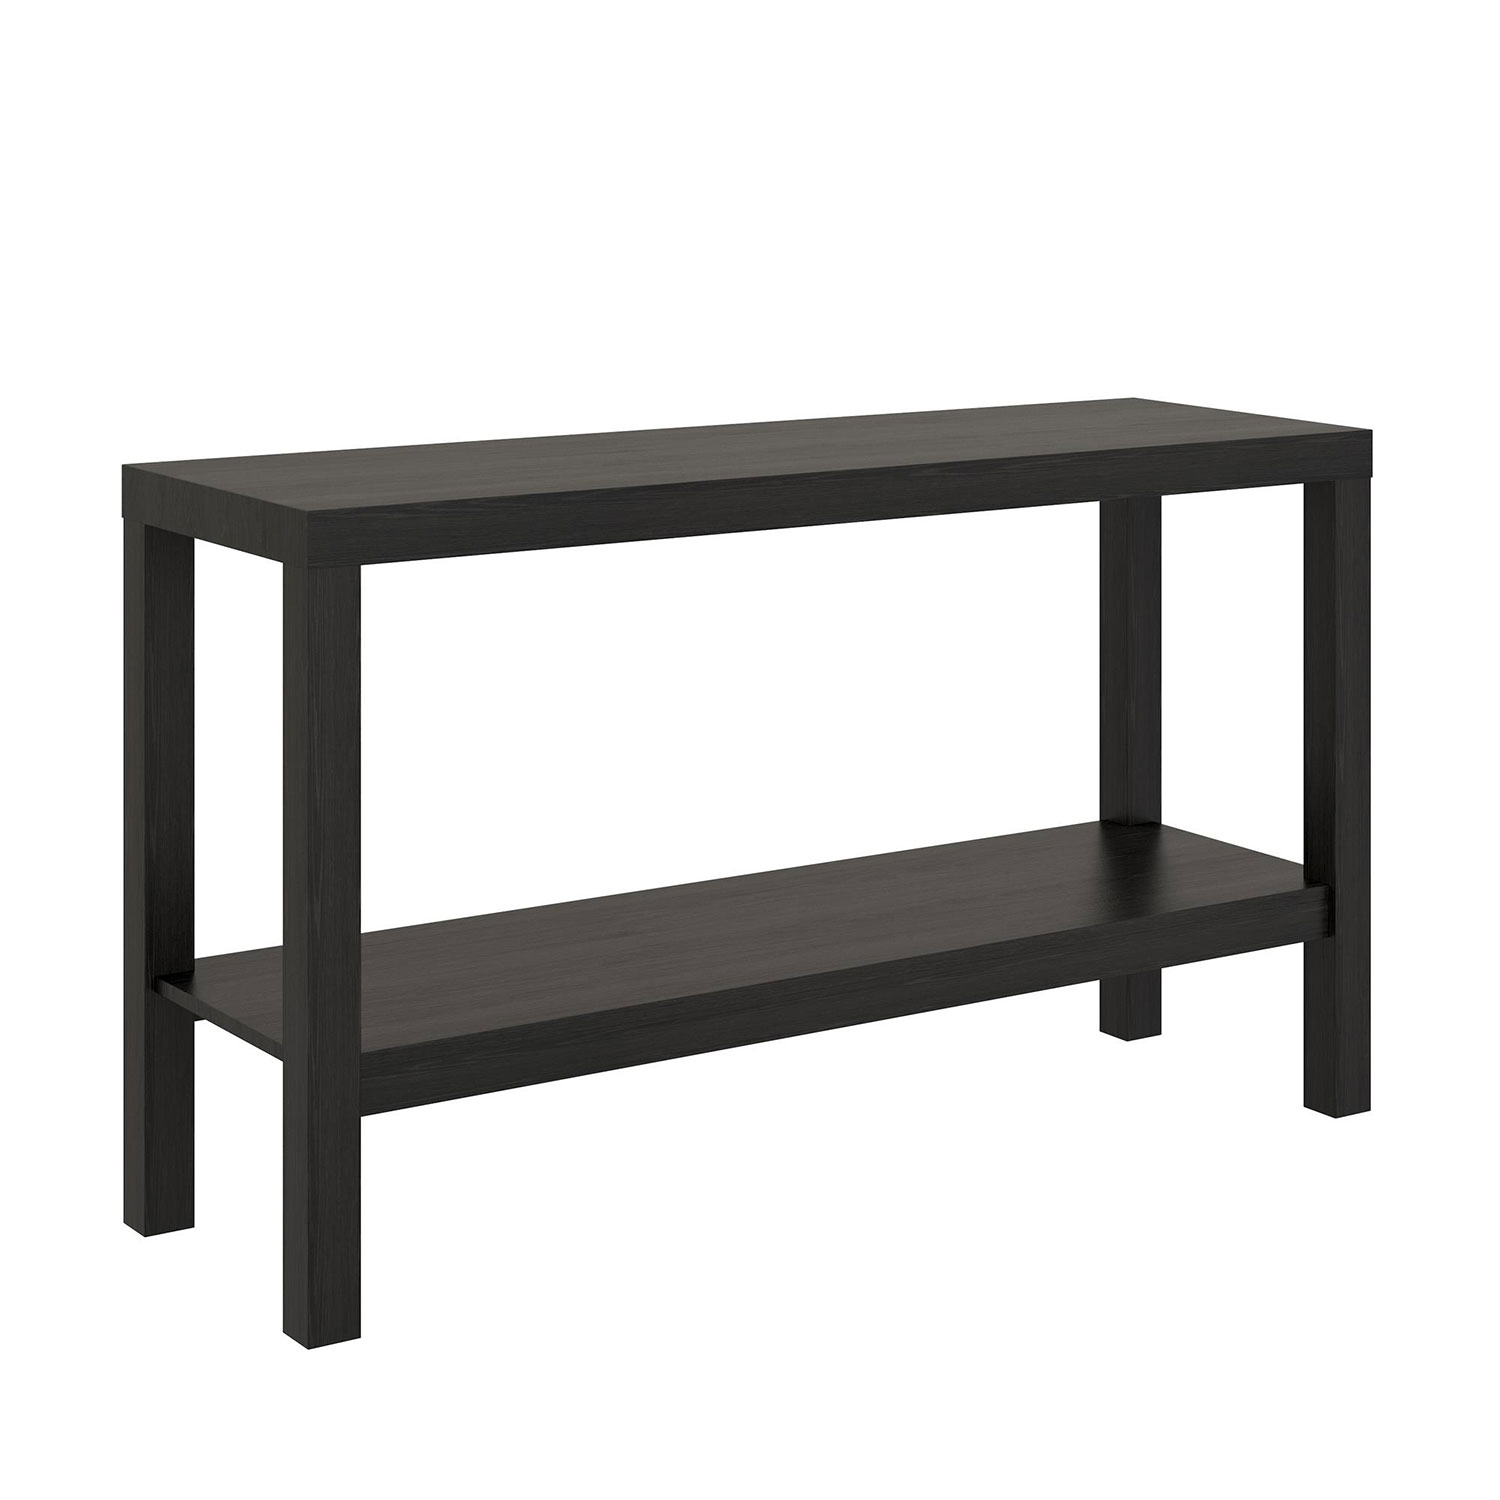 mainstays parsons console table, black oak